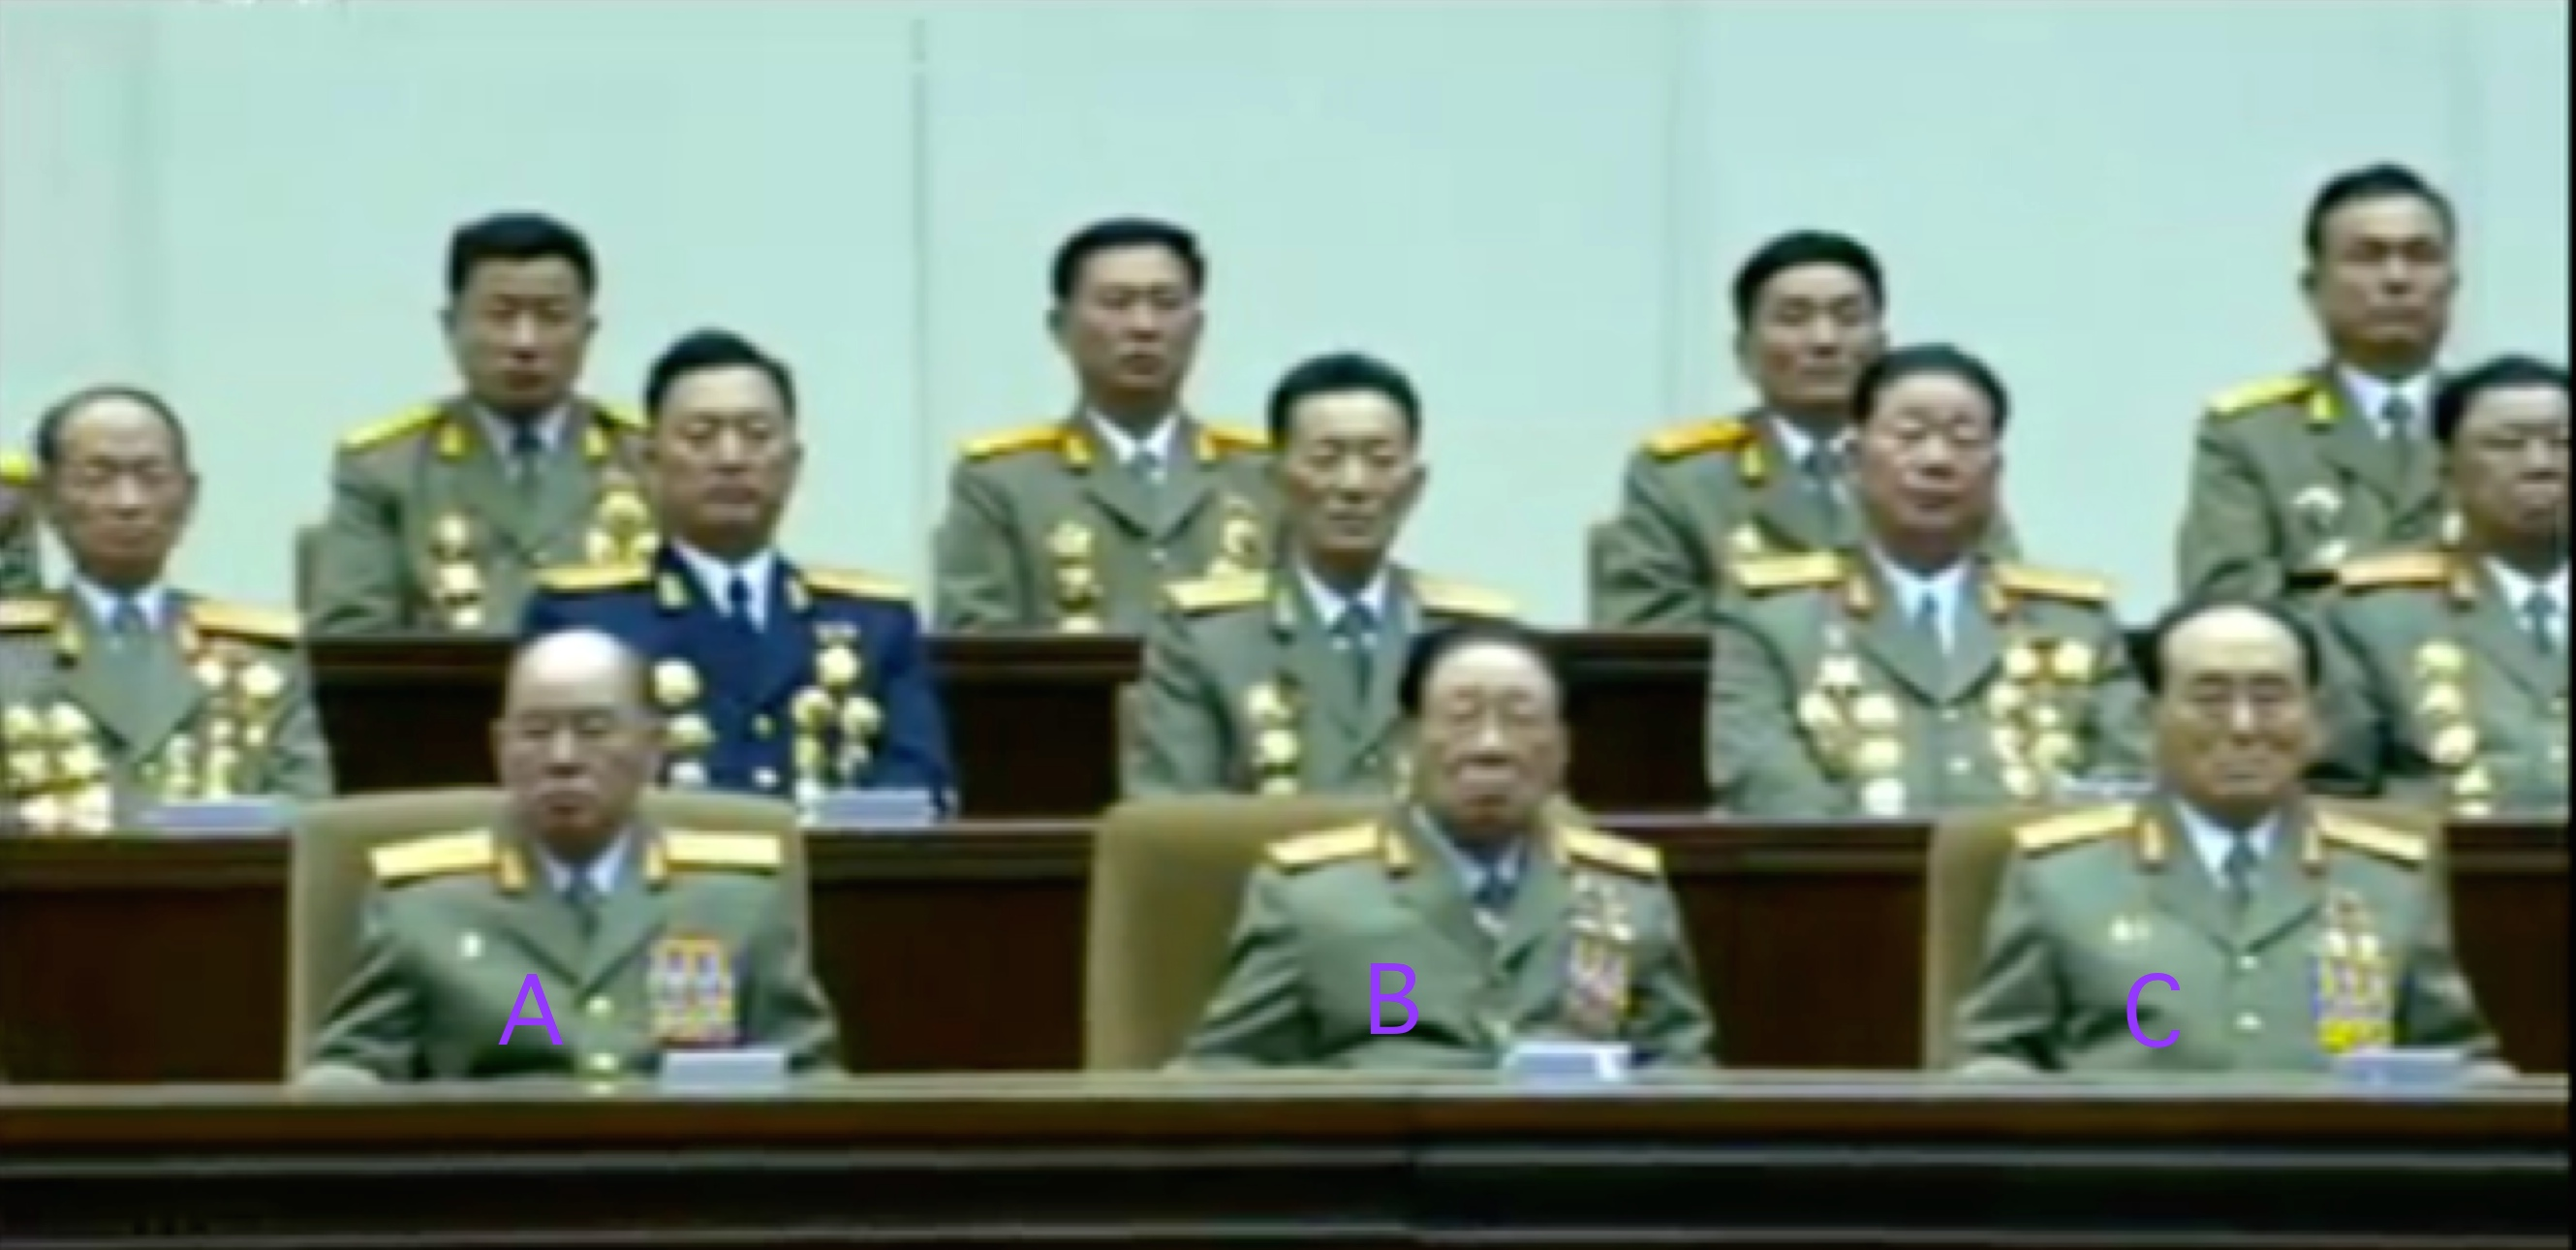 Chief of the KPA General Staff General Ri Myong Su (A), National Defense Commission Vice Chairman VMar Ri Yong Mu (B) and National Defense Commission Vice Chairman General O Kuk Ryol [C] on the platform for the central report meeting marking KJI's birthday (Photo: KCTV screen grabs).